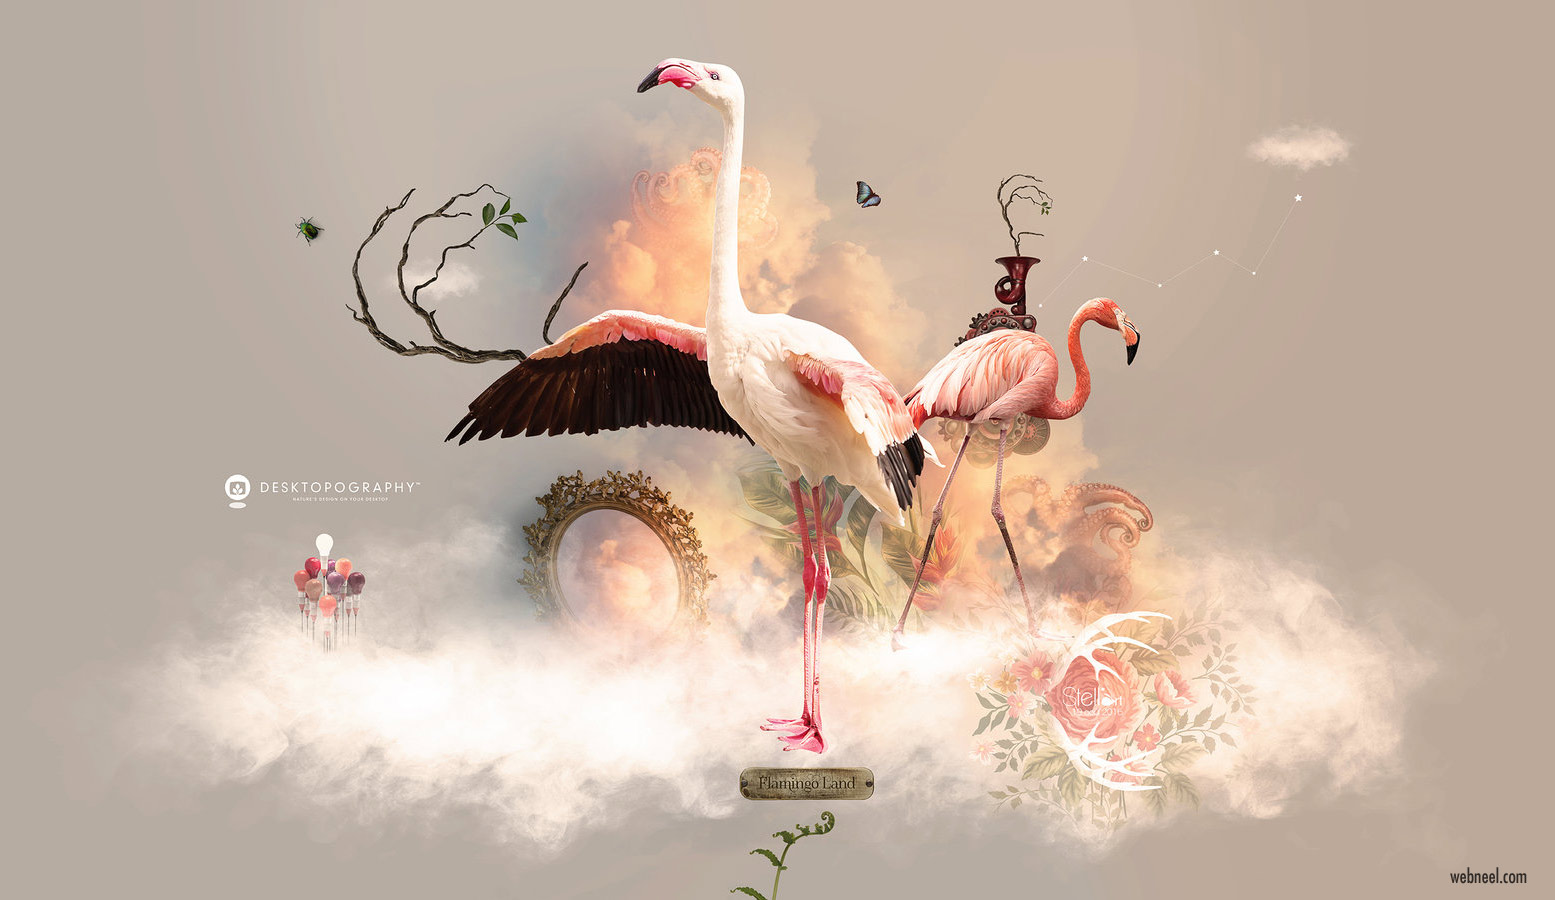 flamingo photo manipulation wallpaper photoshop by stellart